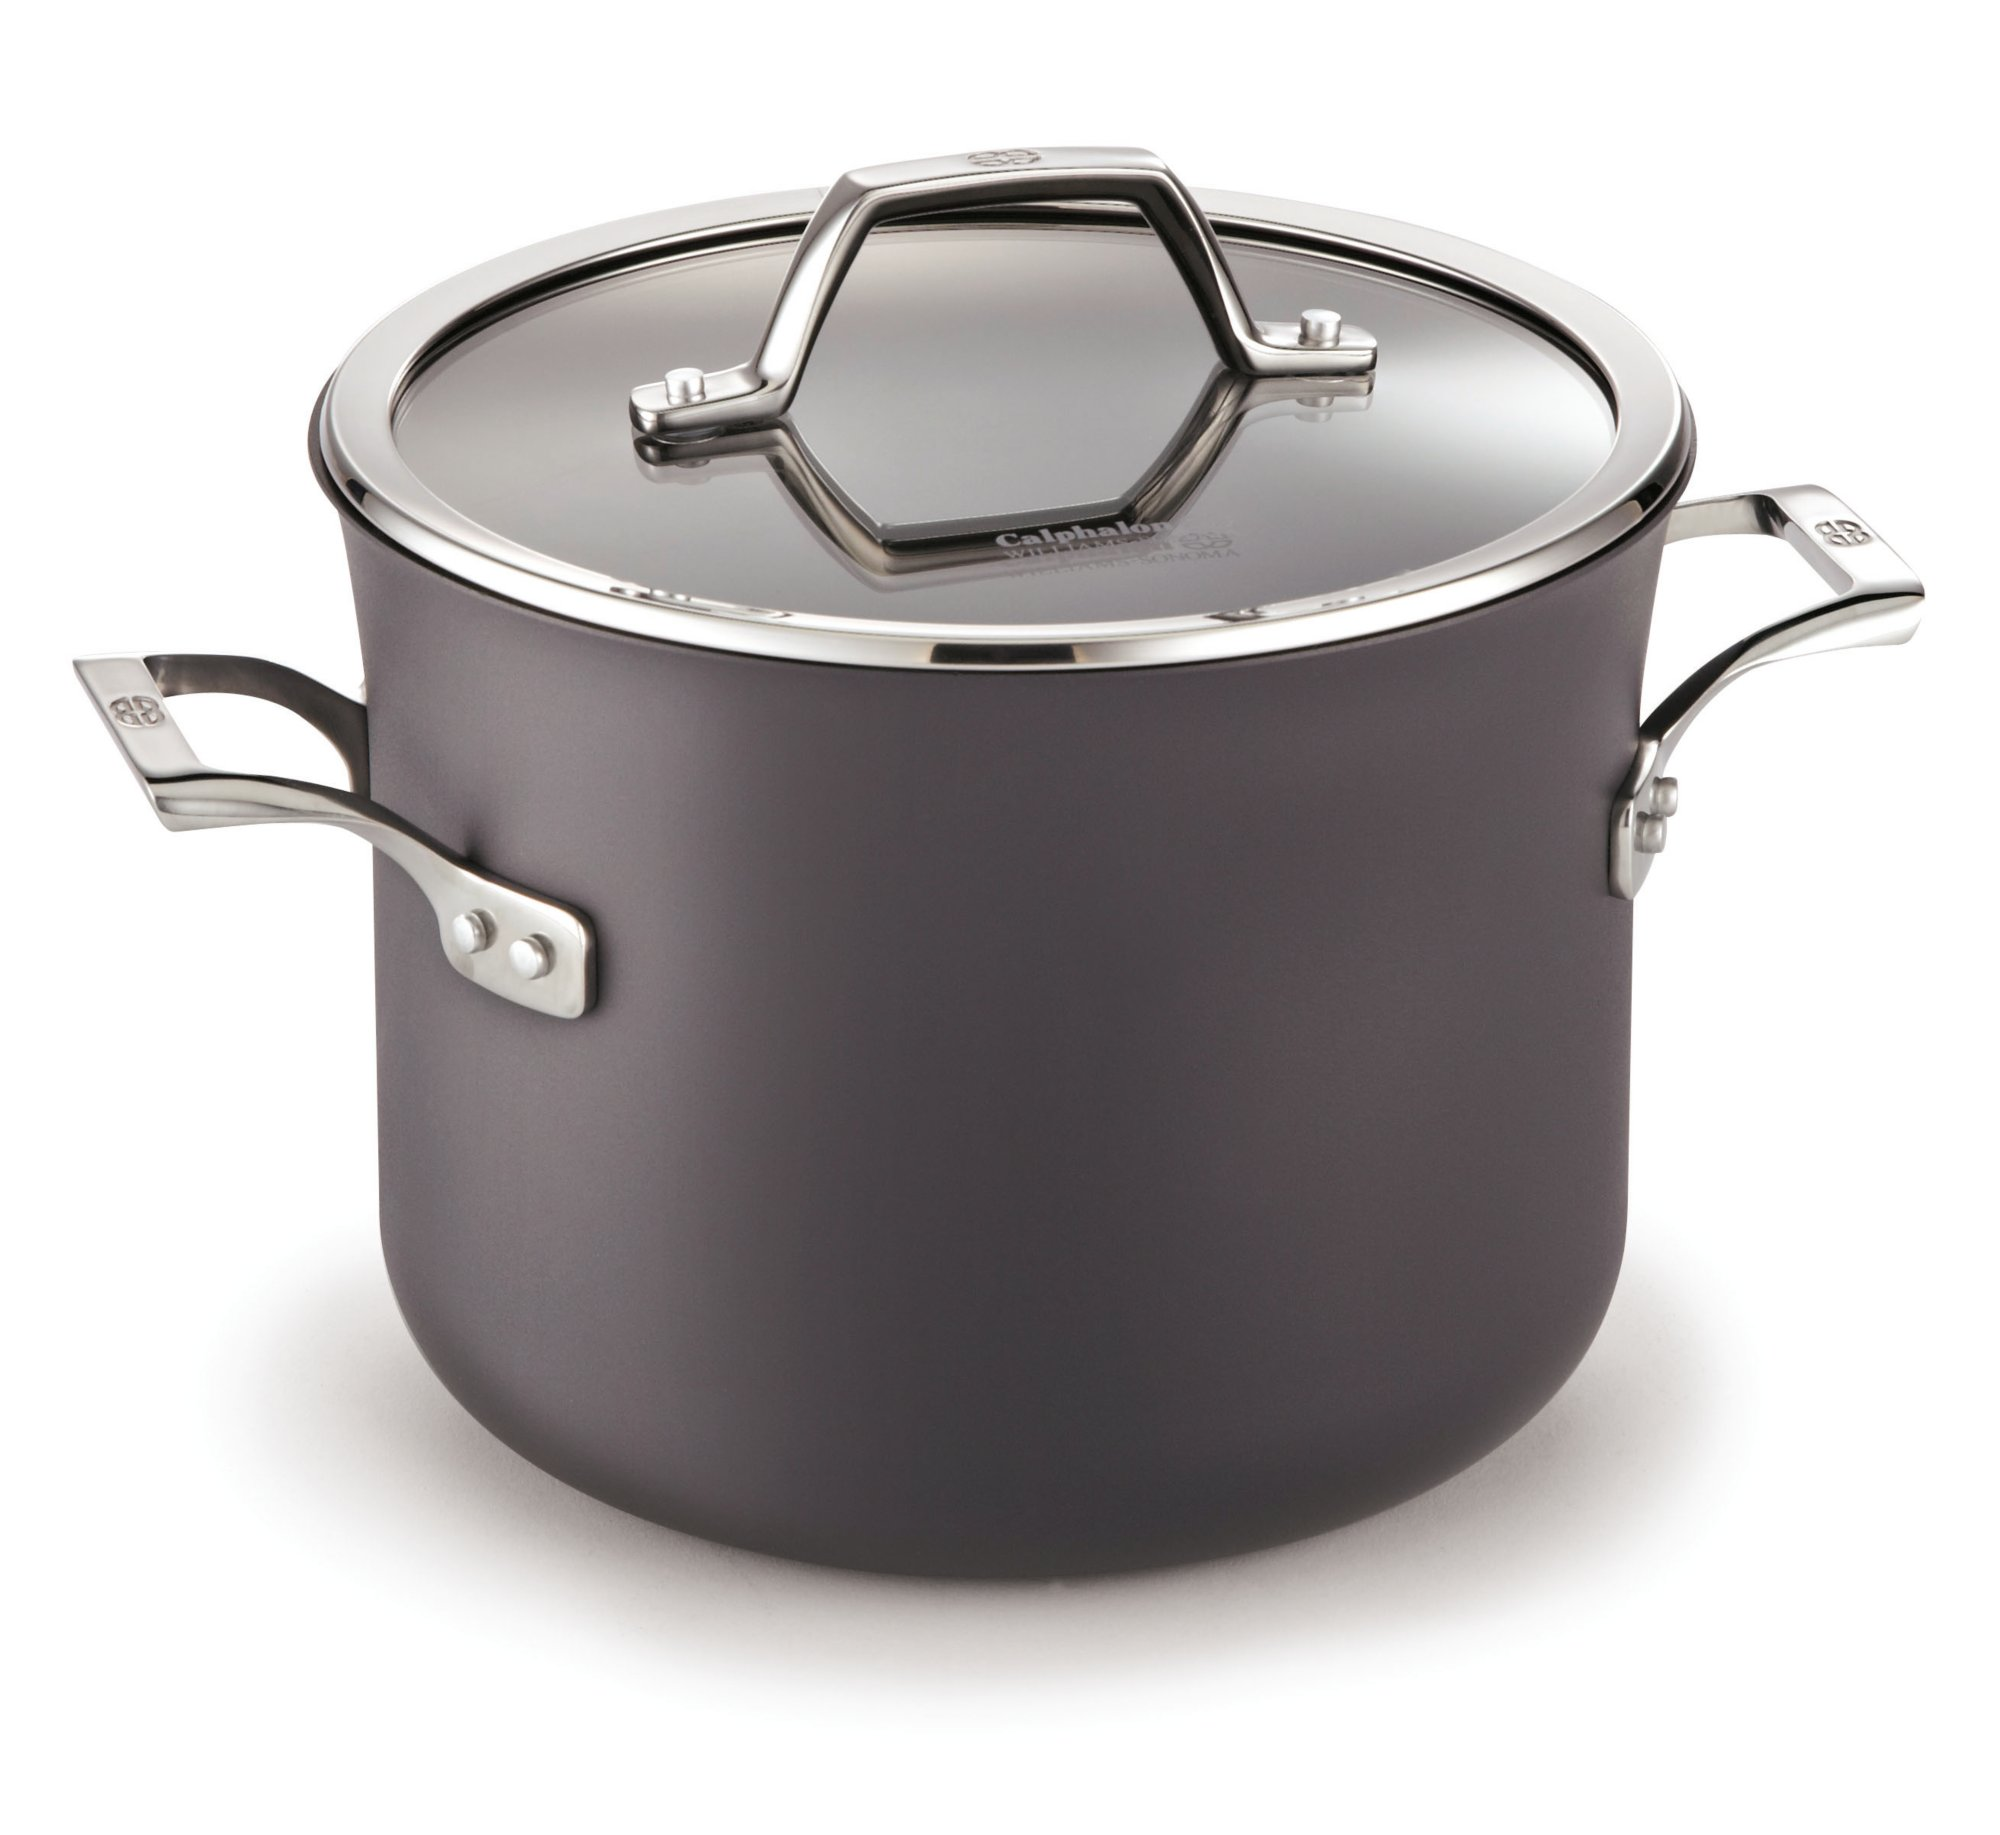 Calphalon Williams-Sonoma Elite Nonstick 6-qt. Stock Pot with Cover